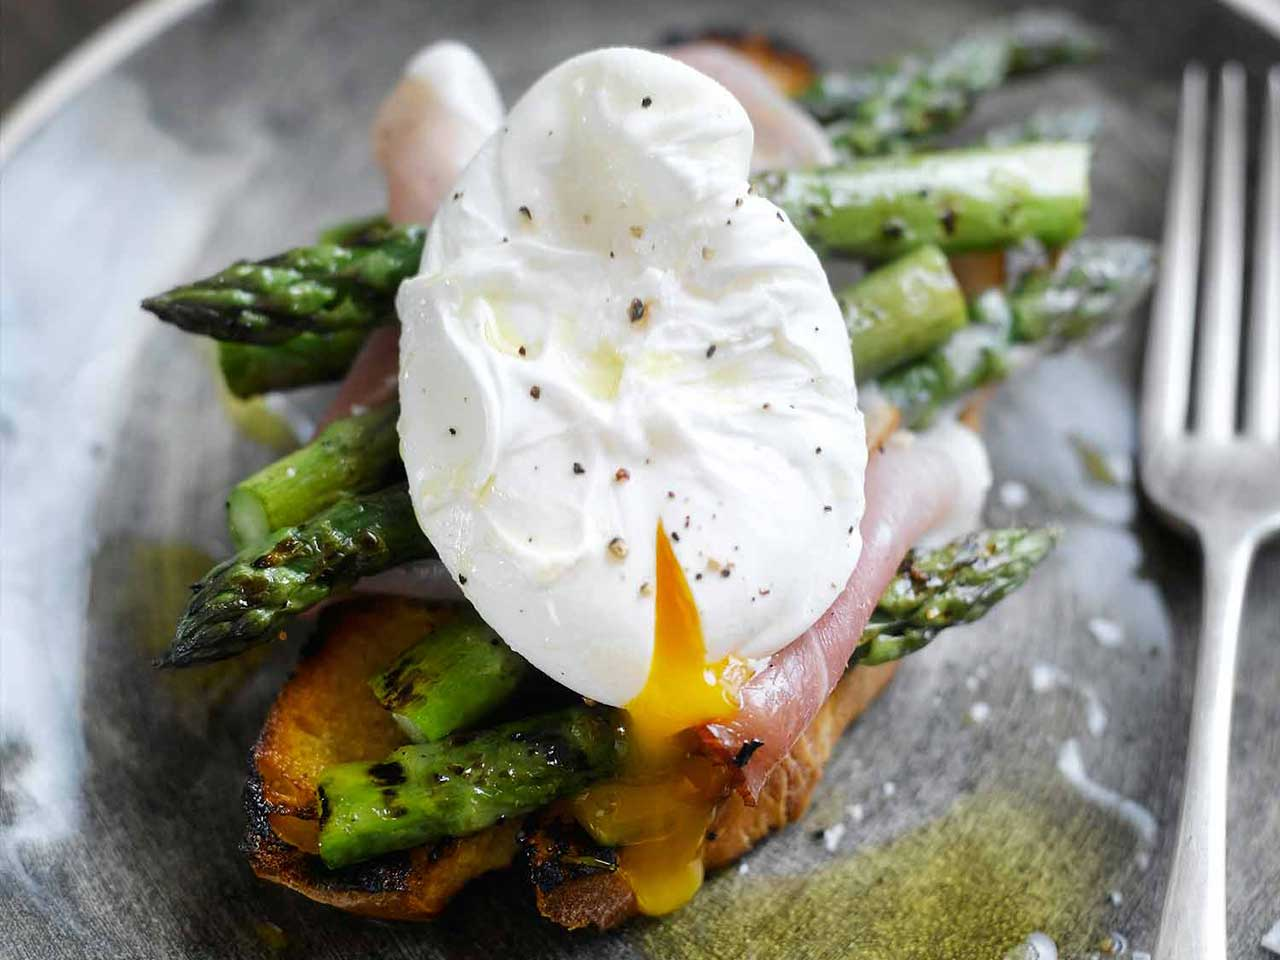 Toasted sourdough with grilled asparagus, Serrano ham and poached eggs